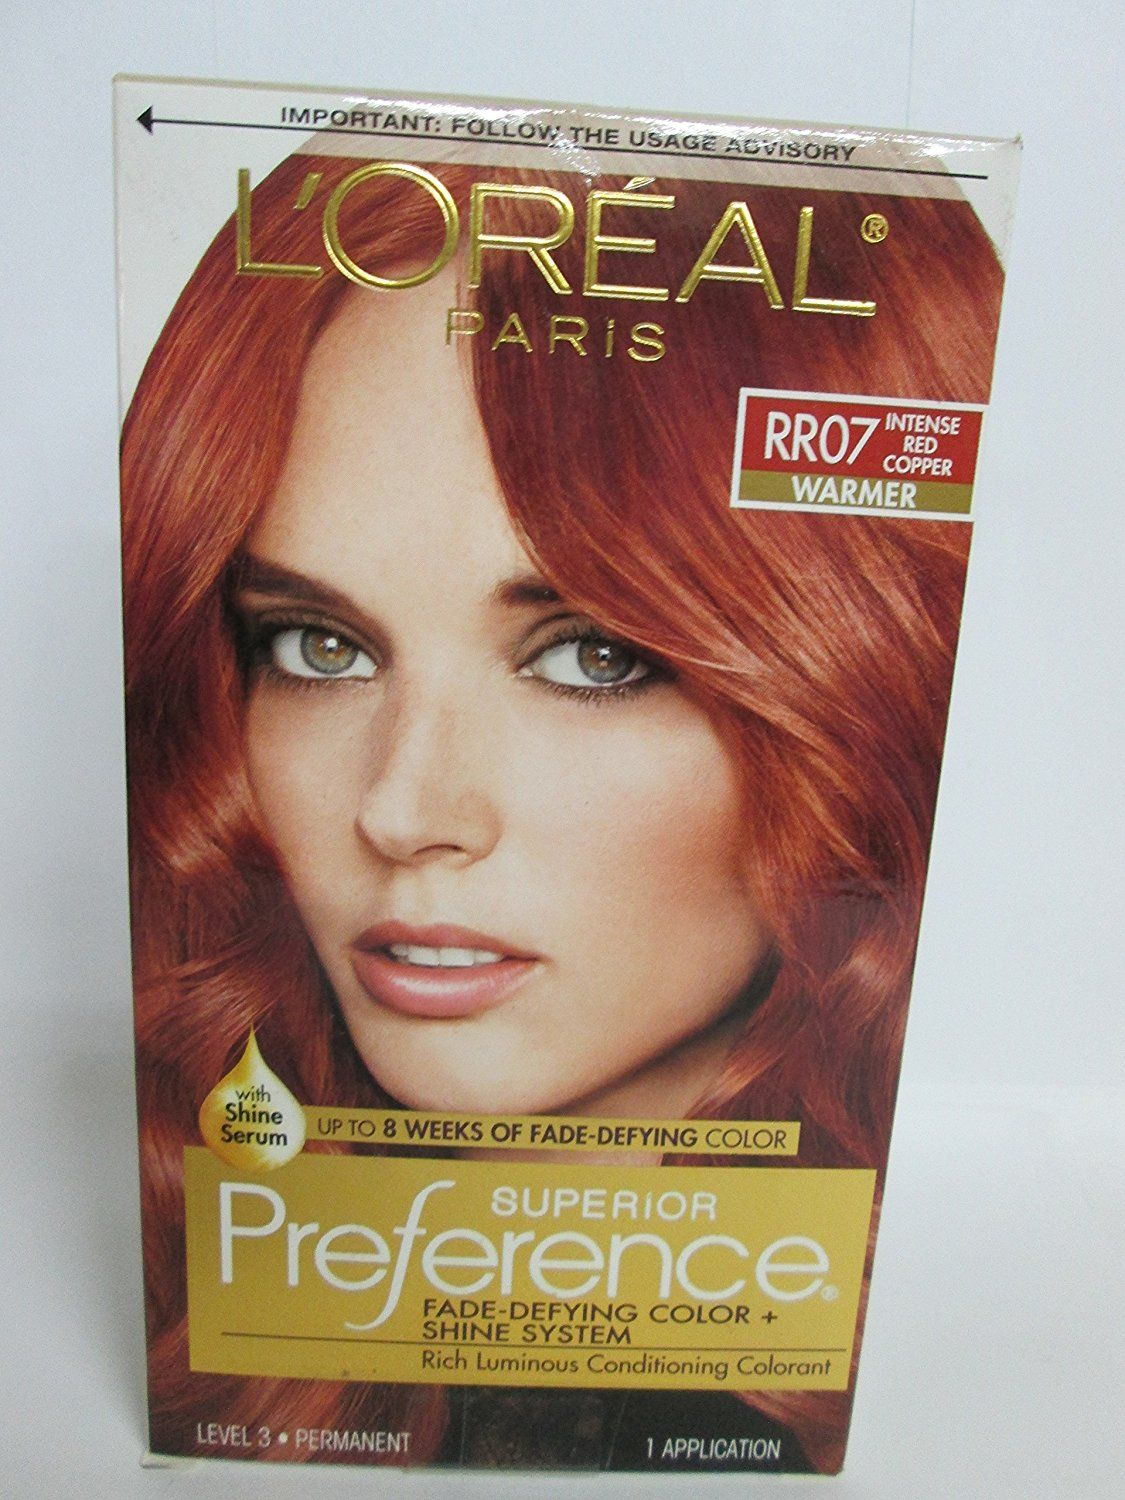 Loreal Superior Preference Fade Defying Hair Color And Shine System